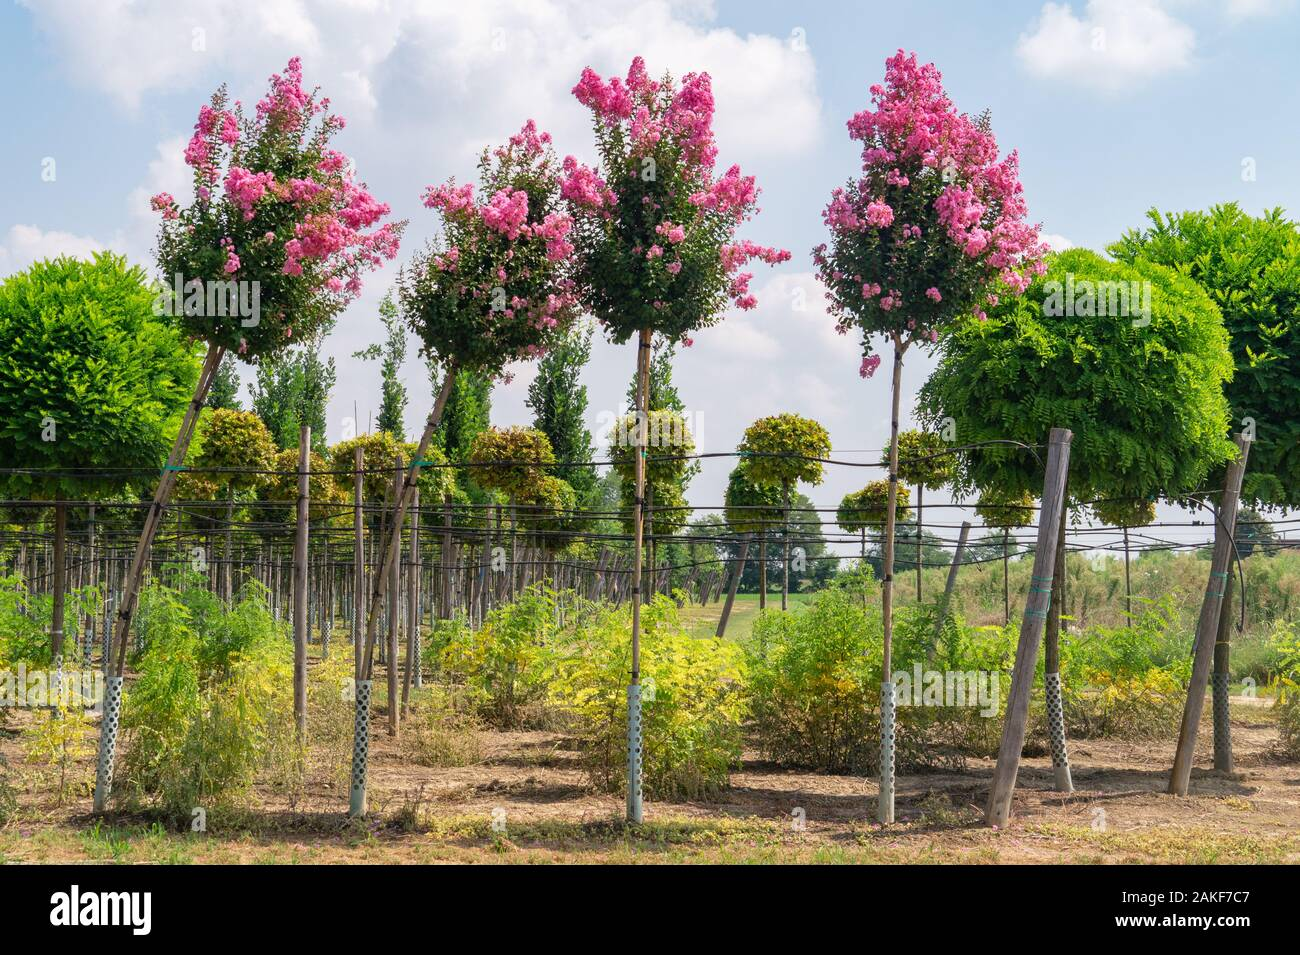 Rows Of Flowering Seedlings Of Lagerstroemia And Decorative Trees